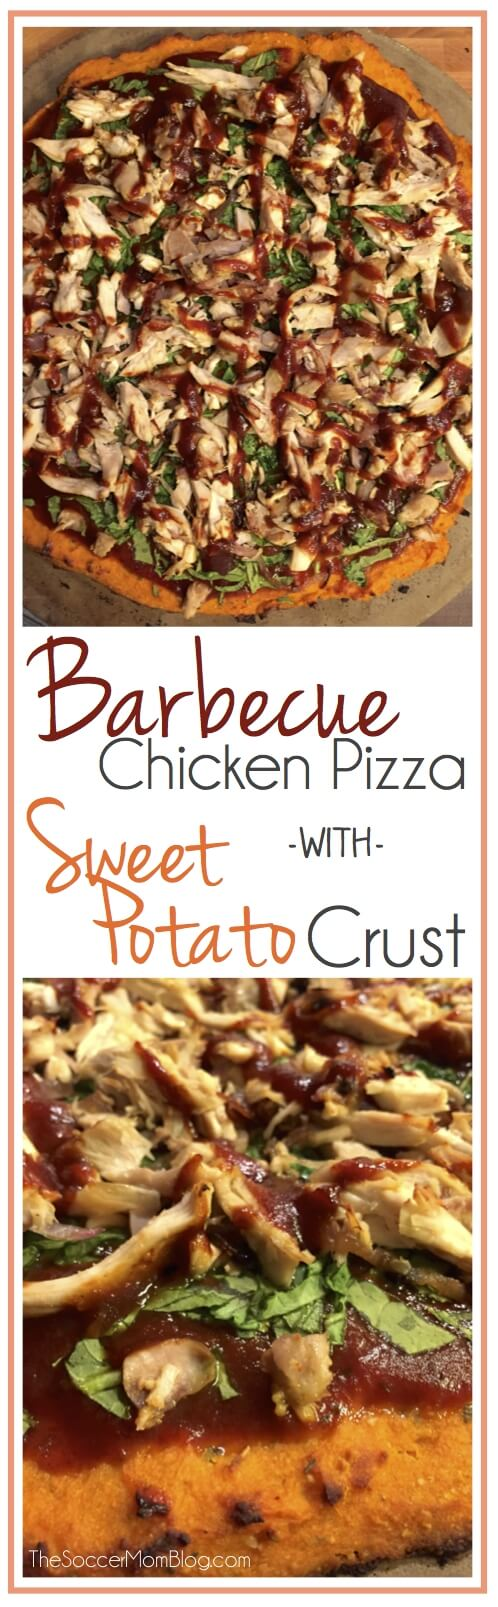 Healthy BBQ Chicken Pizza with Sweet Potato Crust - gluten free, dairy free, and tastes AMAZING!!